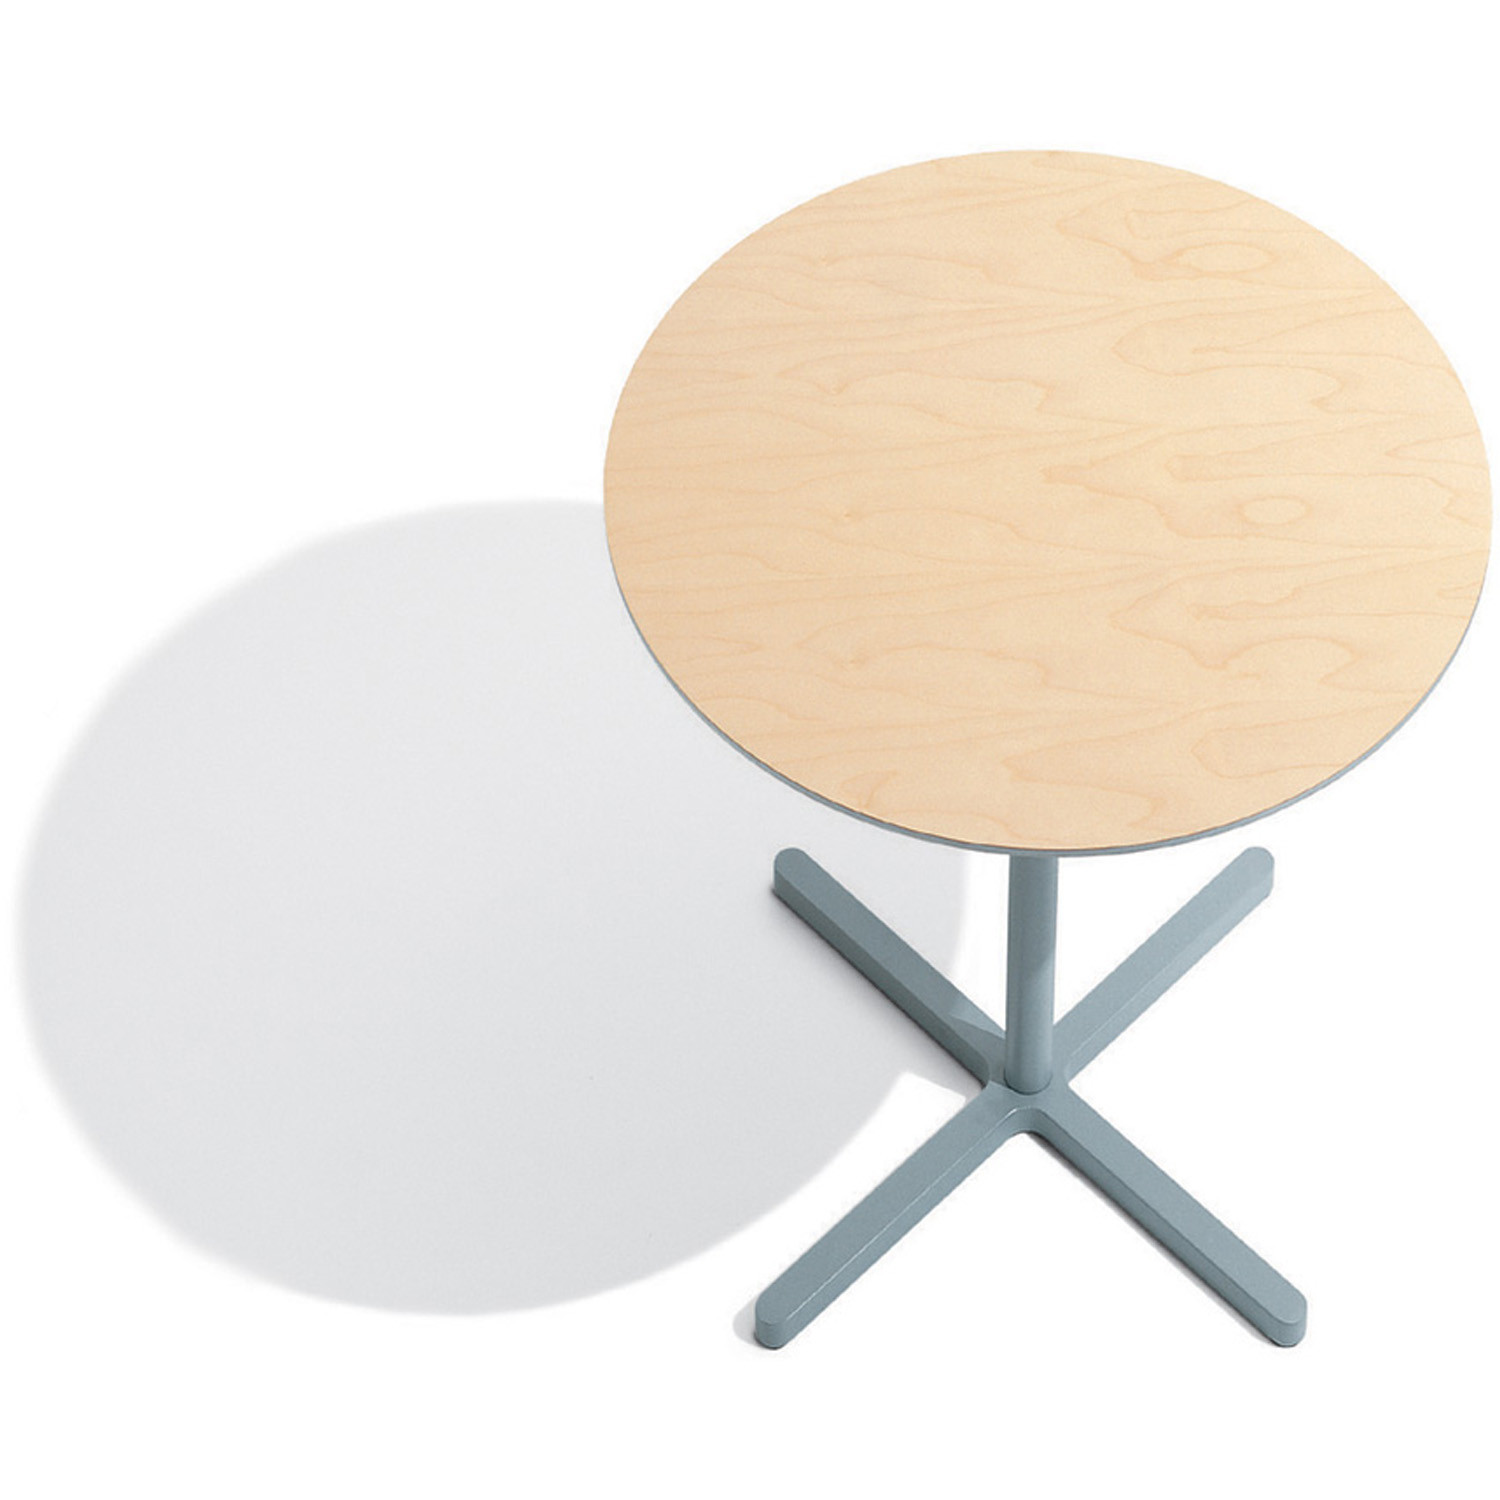 Atlas Table D with cross base